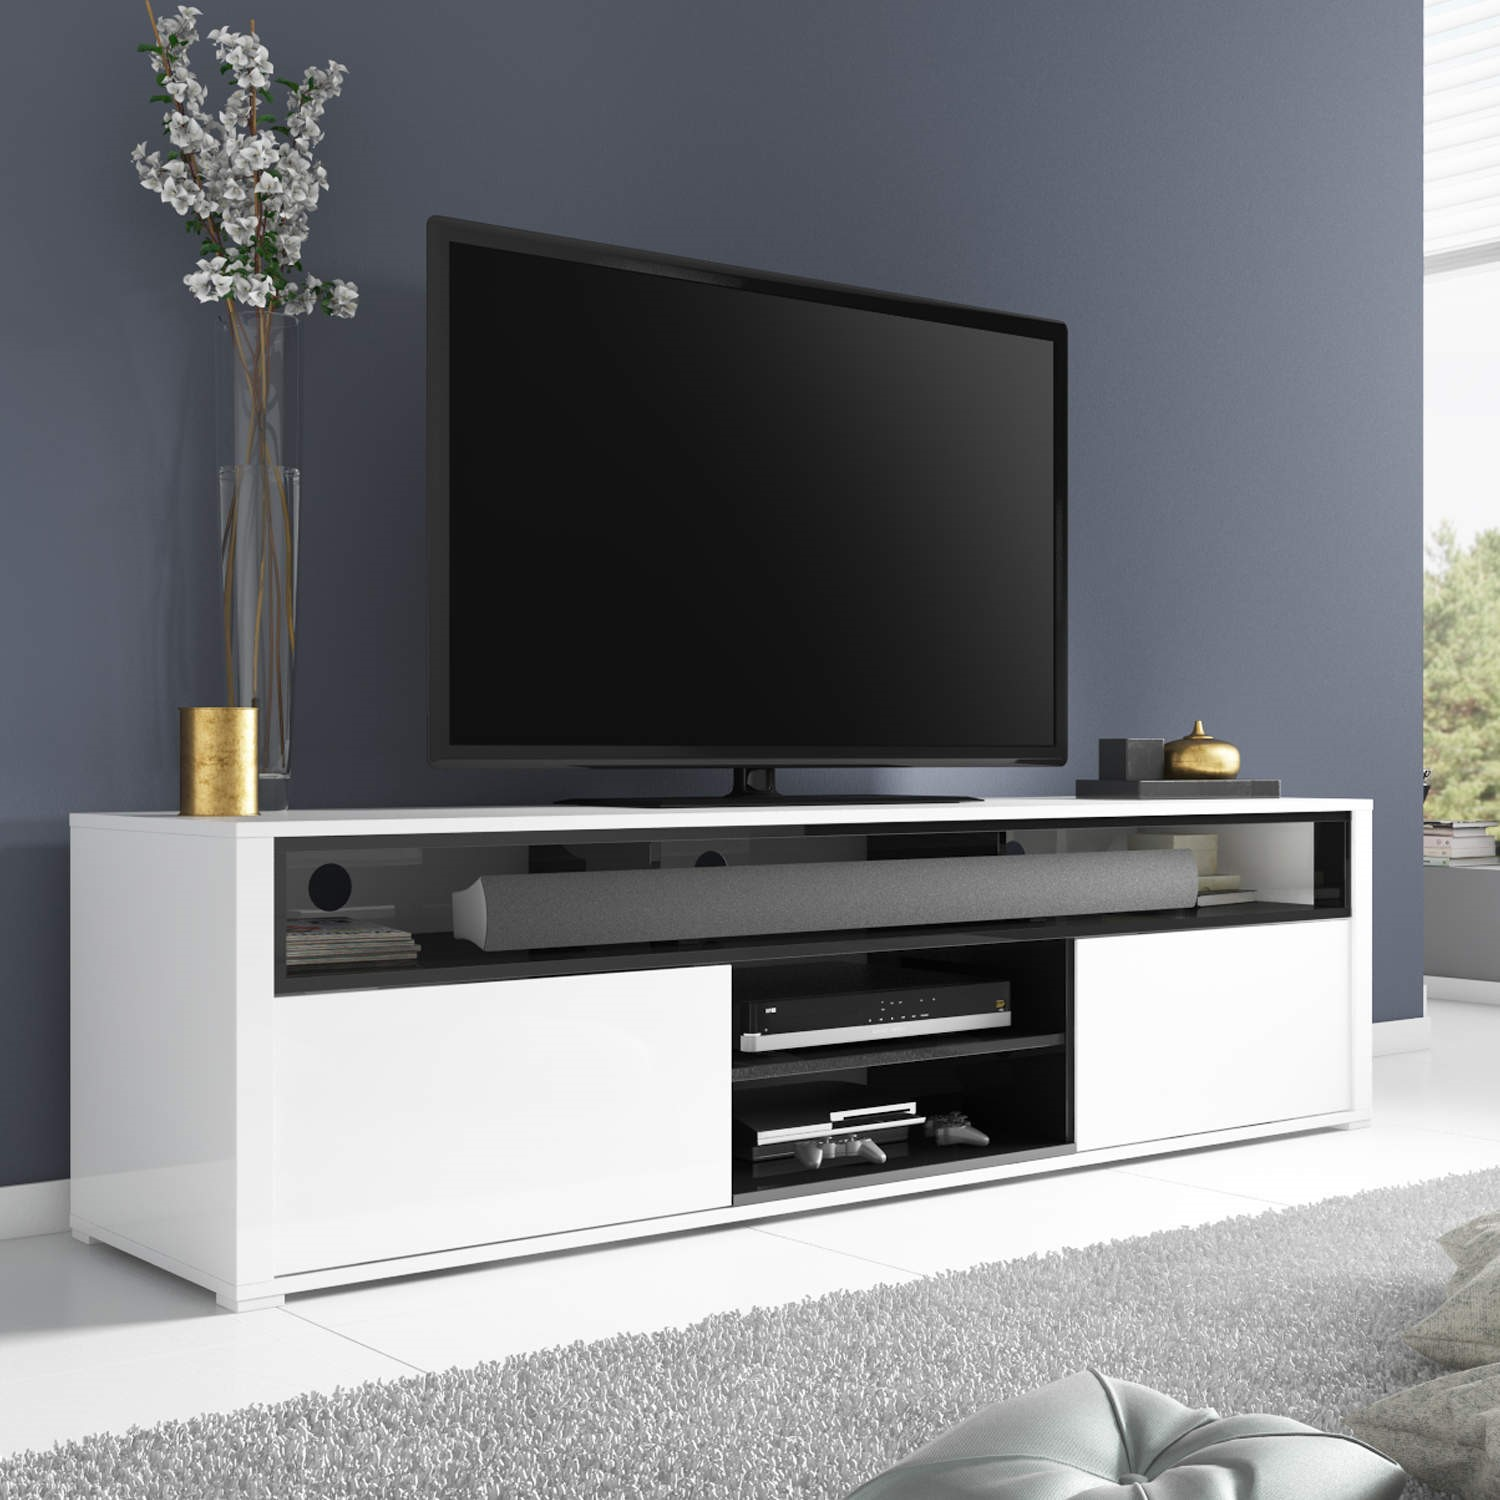 White High Gloss Tv Unit With Soundbar Shelf Tv Cabinet Tv Stand